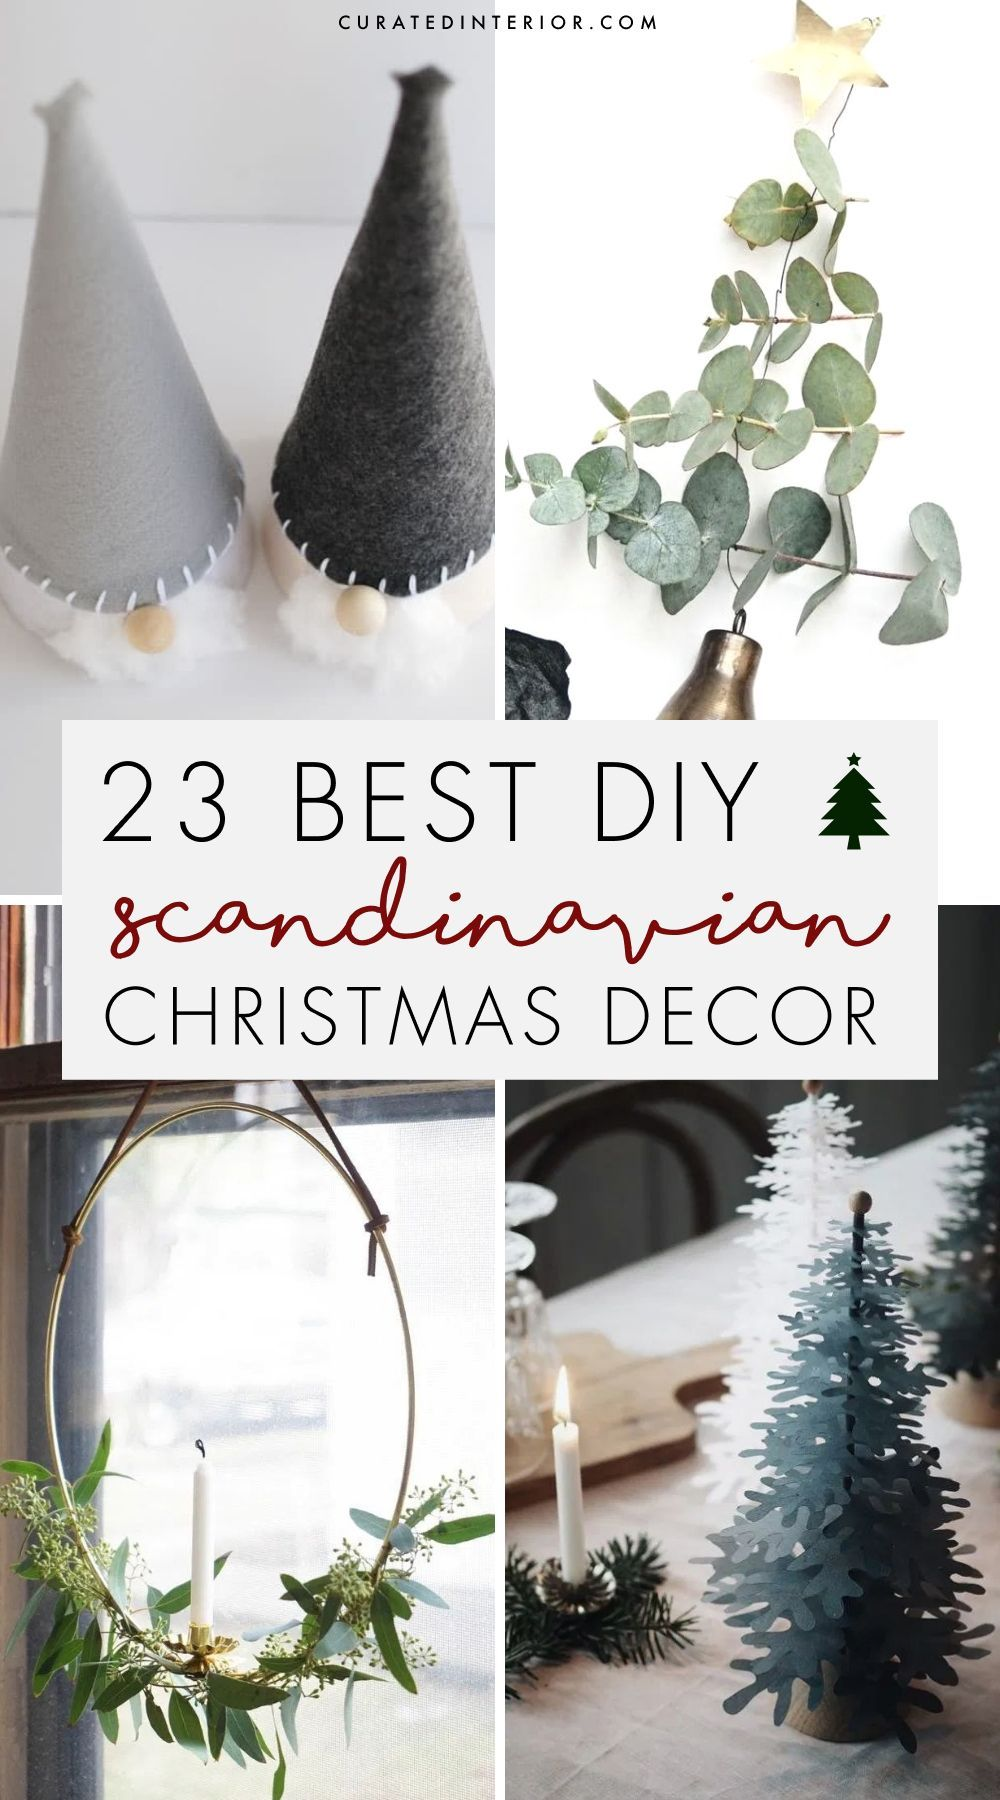 23 Diy Scandinavian Christmas Decorations With Nordic Hygge Vibes Scandinavian Christmas Decorations Nordic Christmas Decorations Scandi Christmas Decorations